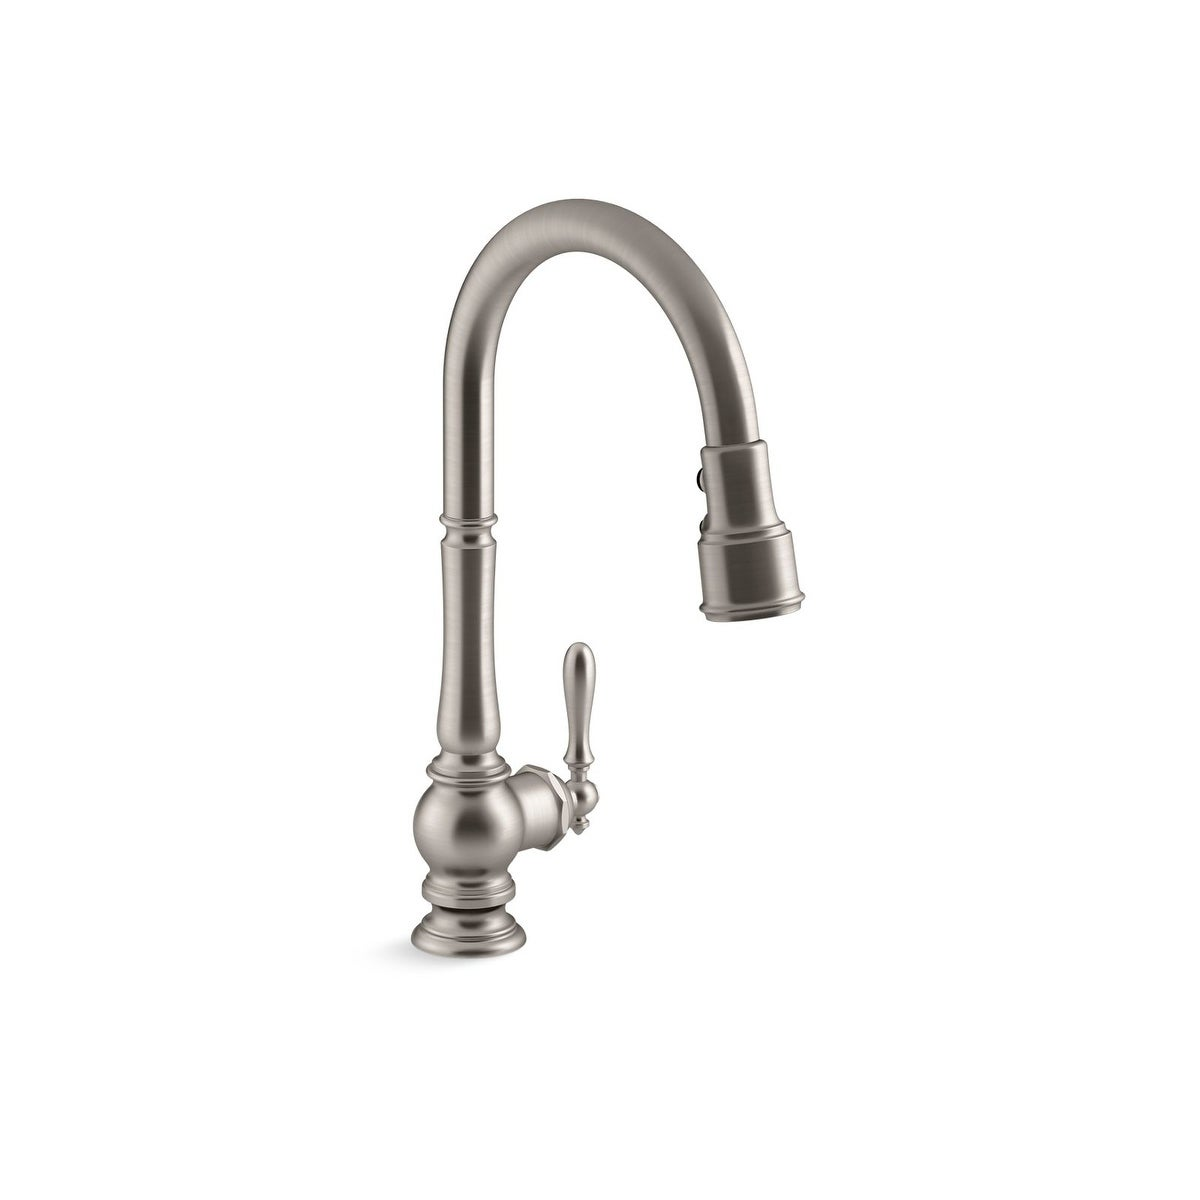 Kohler Artifacts Pullout Spray Single Hole Kitchen Faucet K-99259-2BZ Oil  Rubbed Bronze